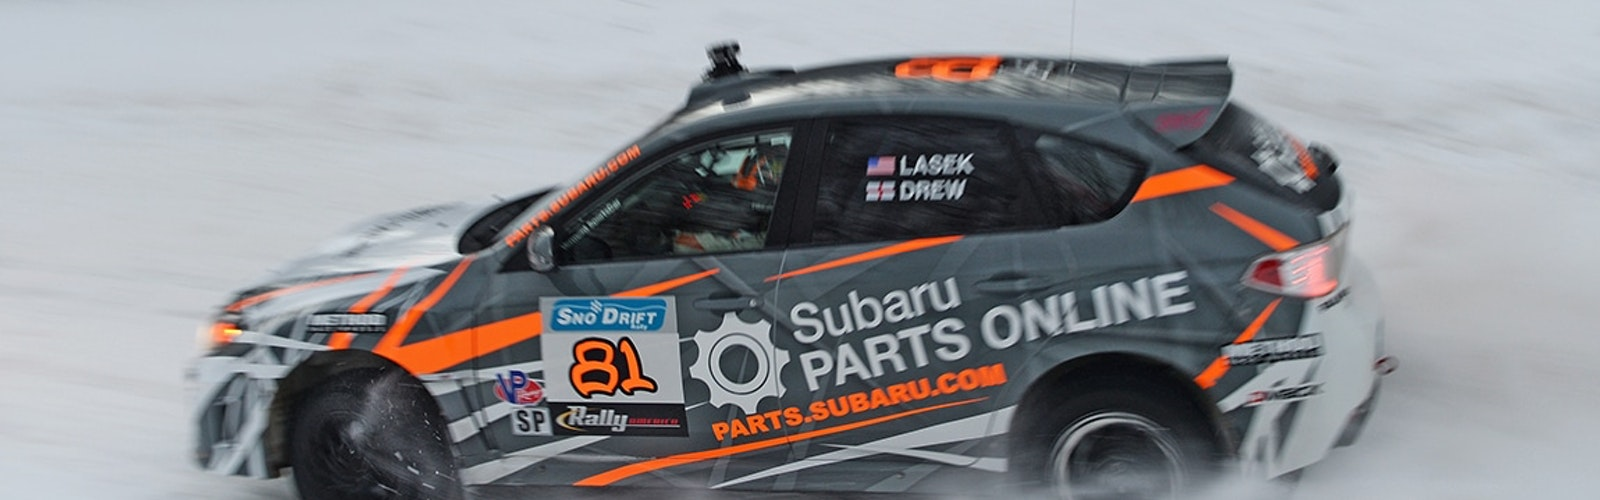 Bucky_Lasek_made_rally_debut_at_SnoDrift_Rally_Jan2016